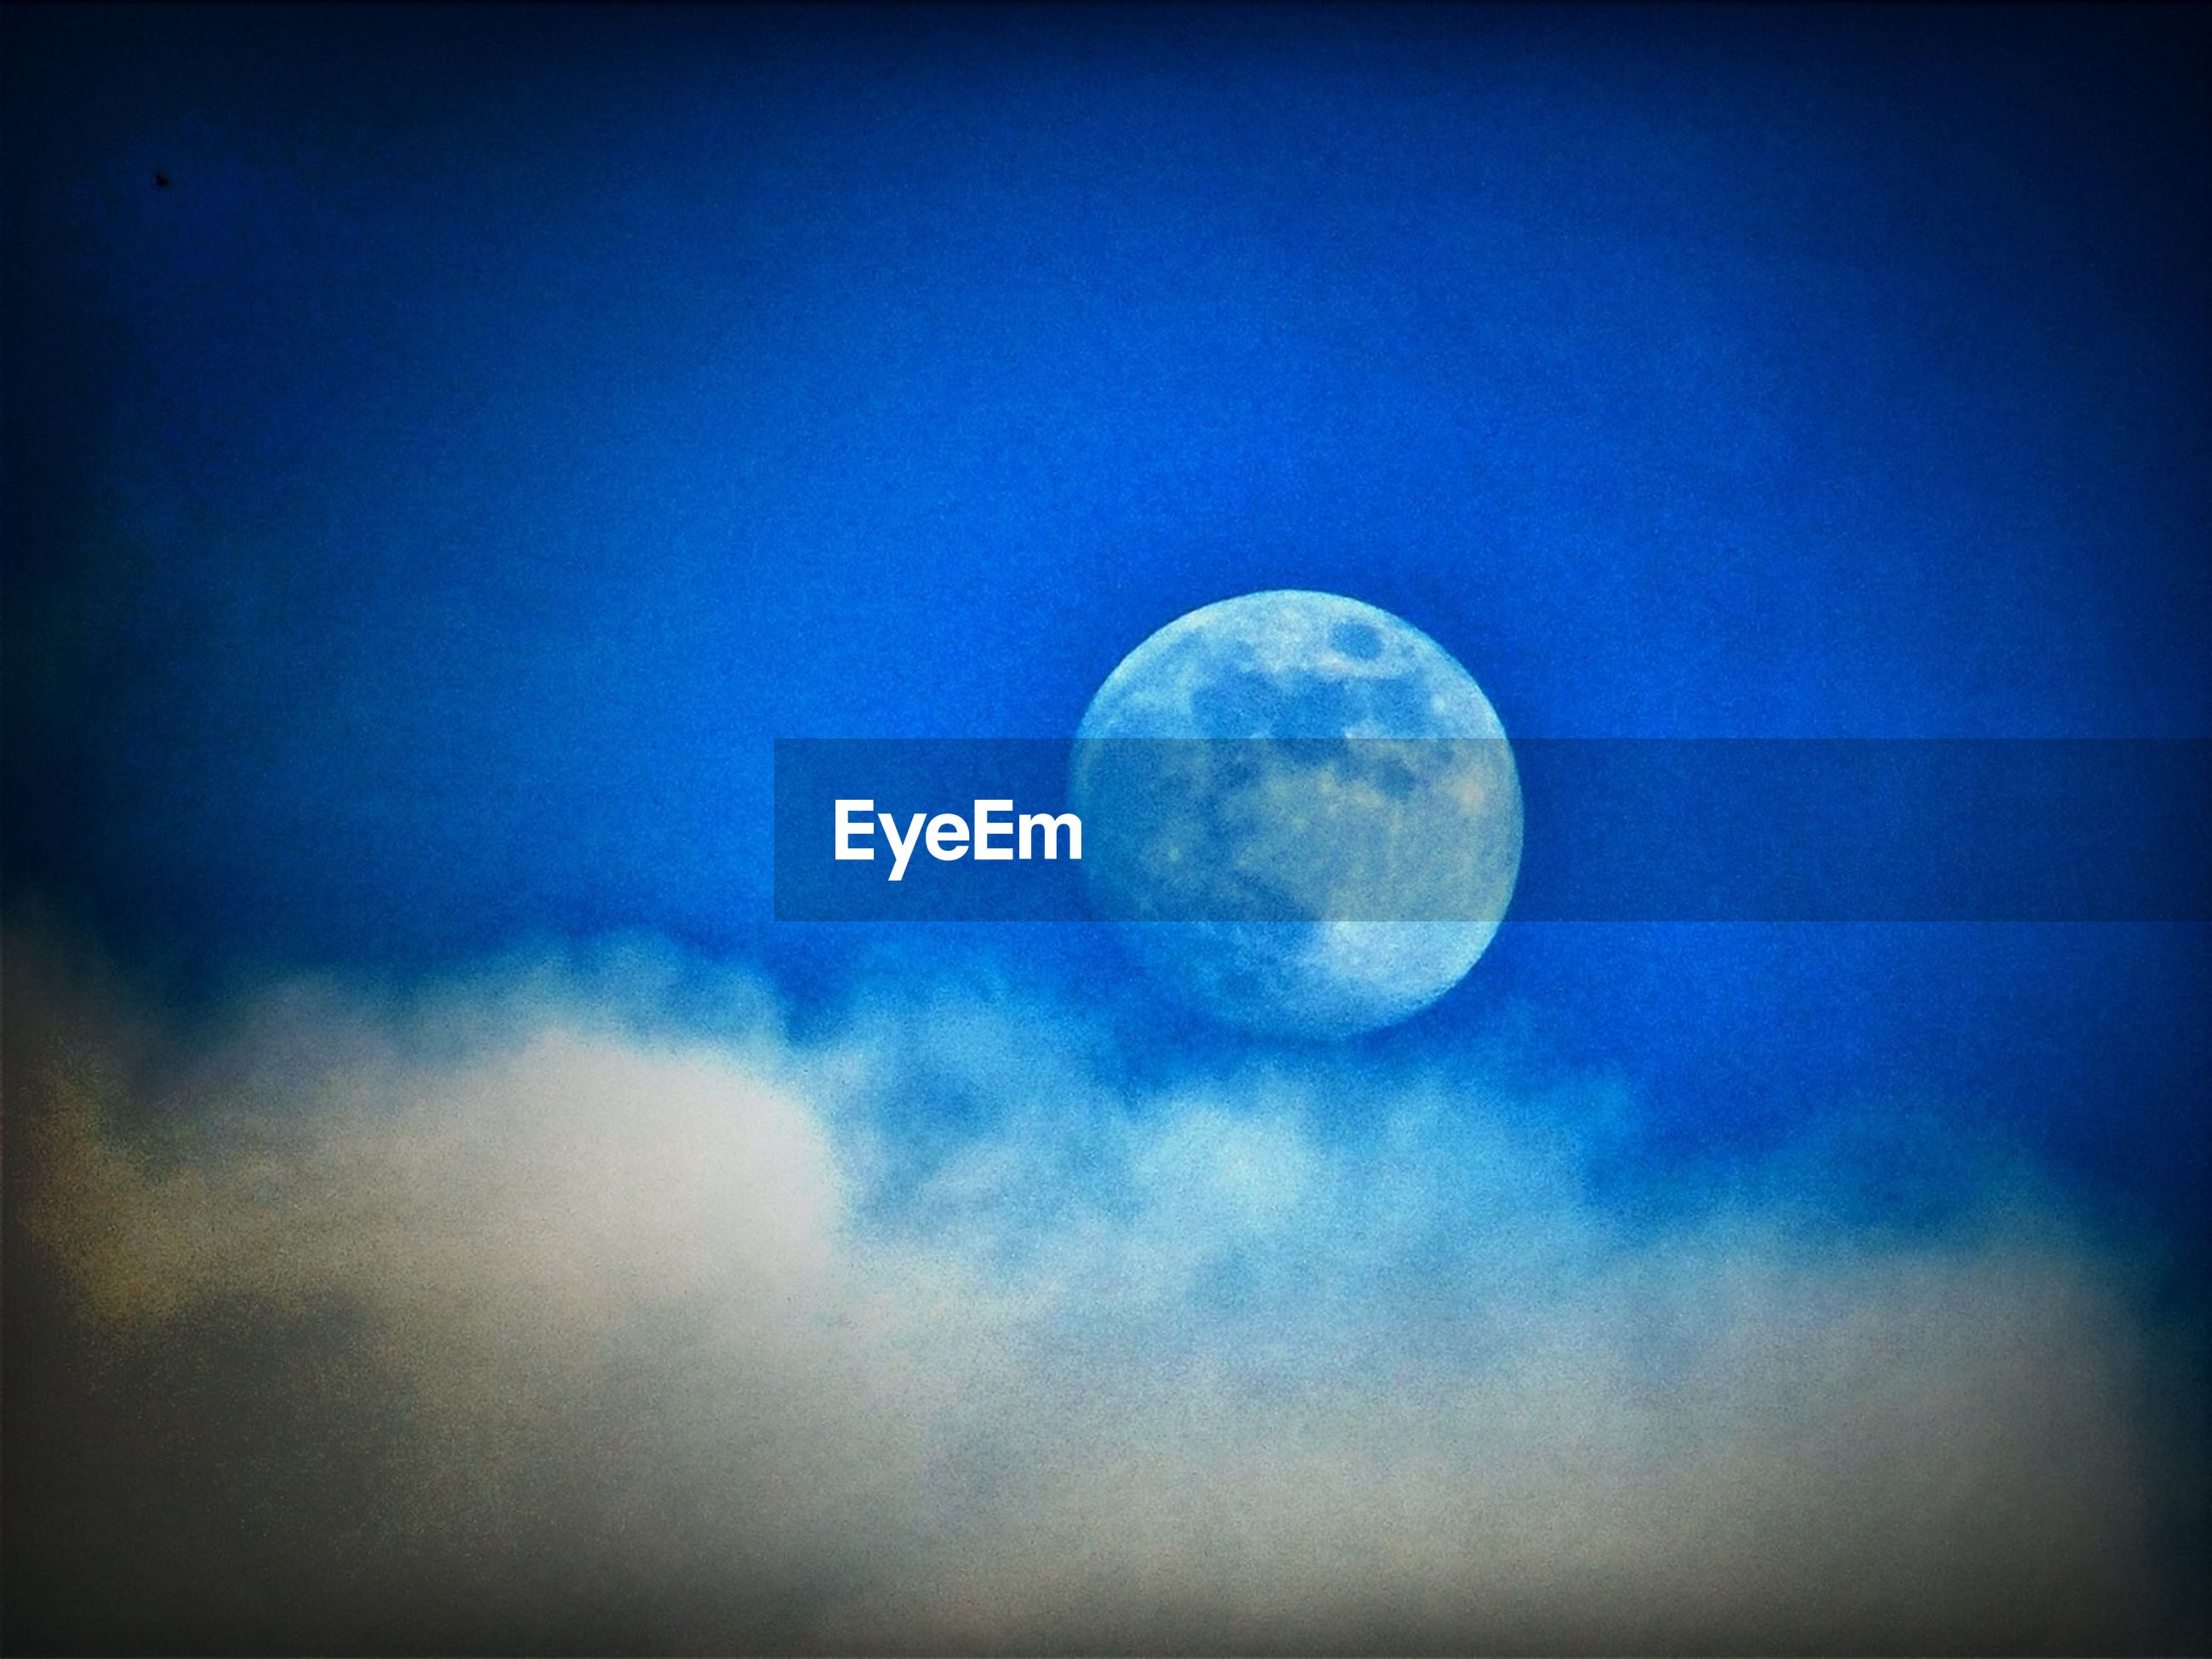 moon, astronomy, low angle view, full moon, planetary moon, sky, circle, beauty in nature, scenics, night, moon surface, sphere, space exploration, tranquility, tranquil scene, nature, sky only, majestic, discovery, blue